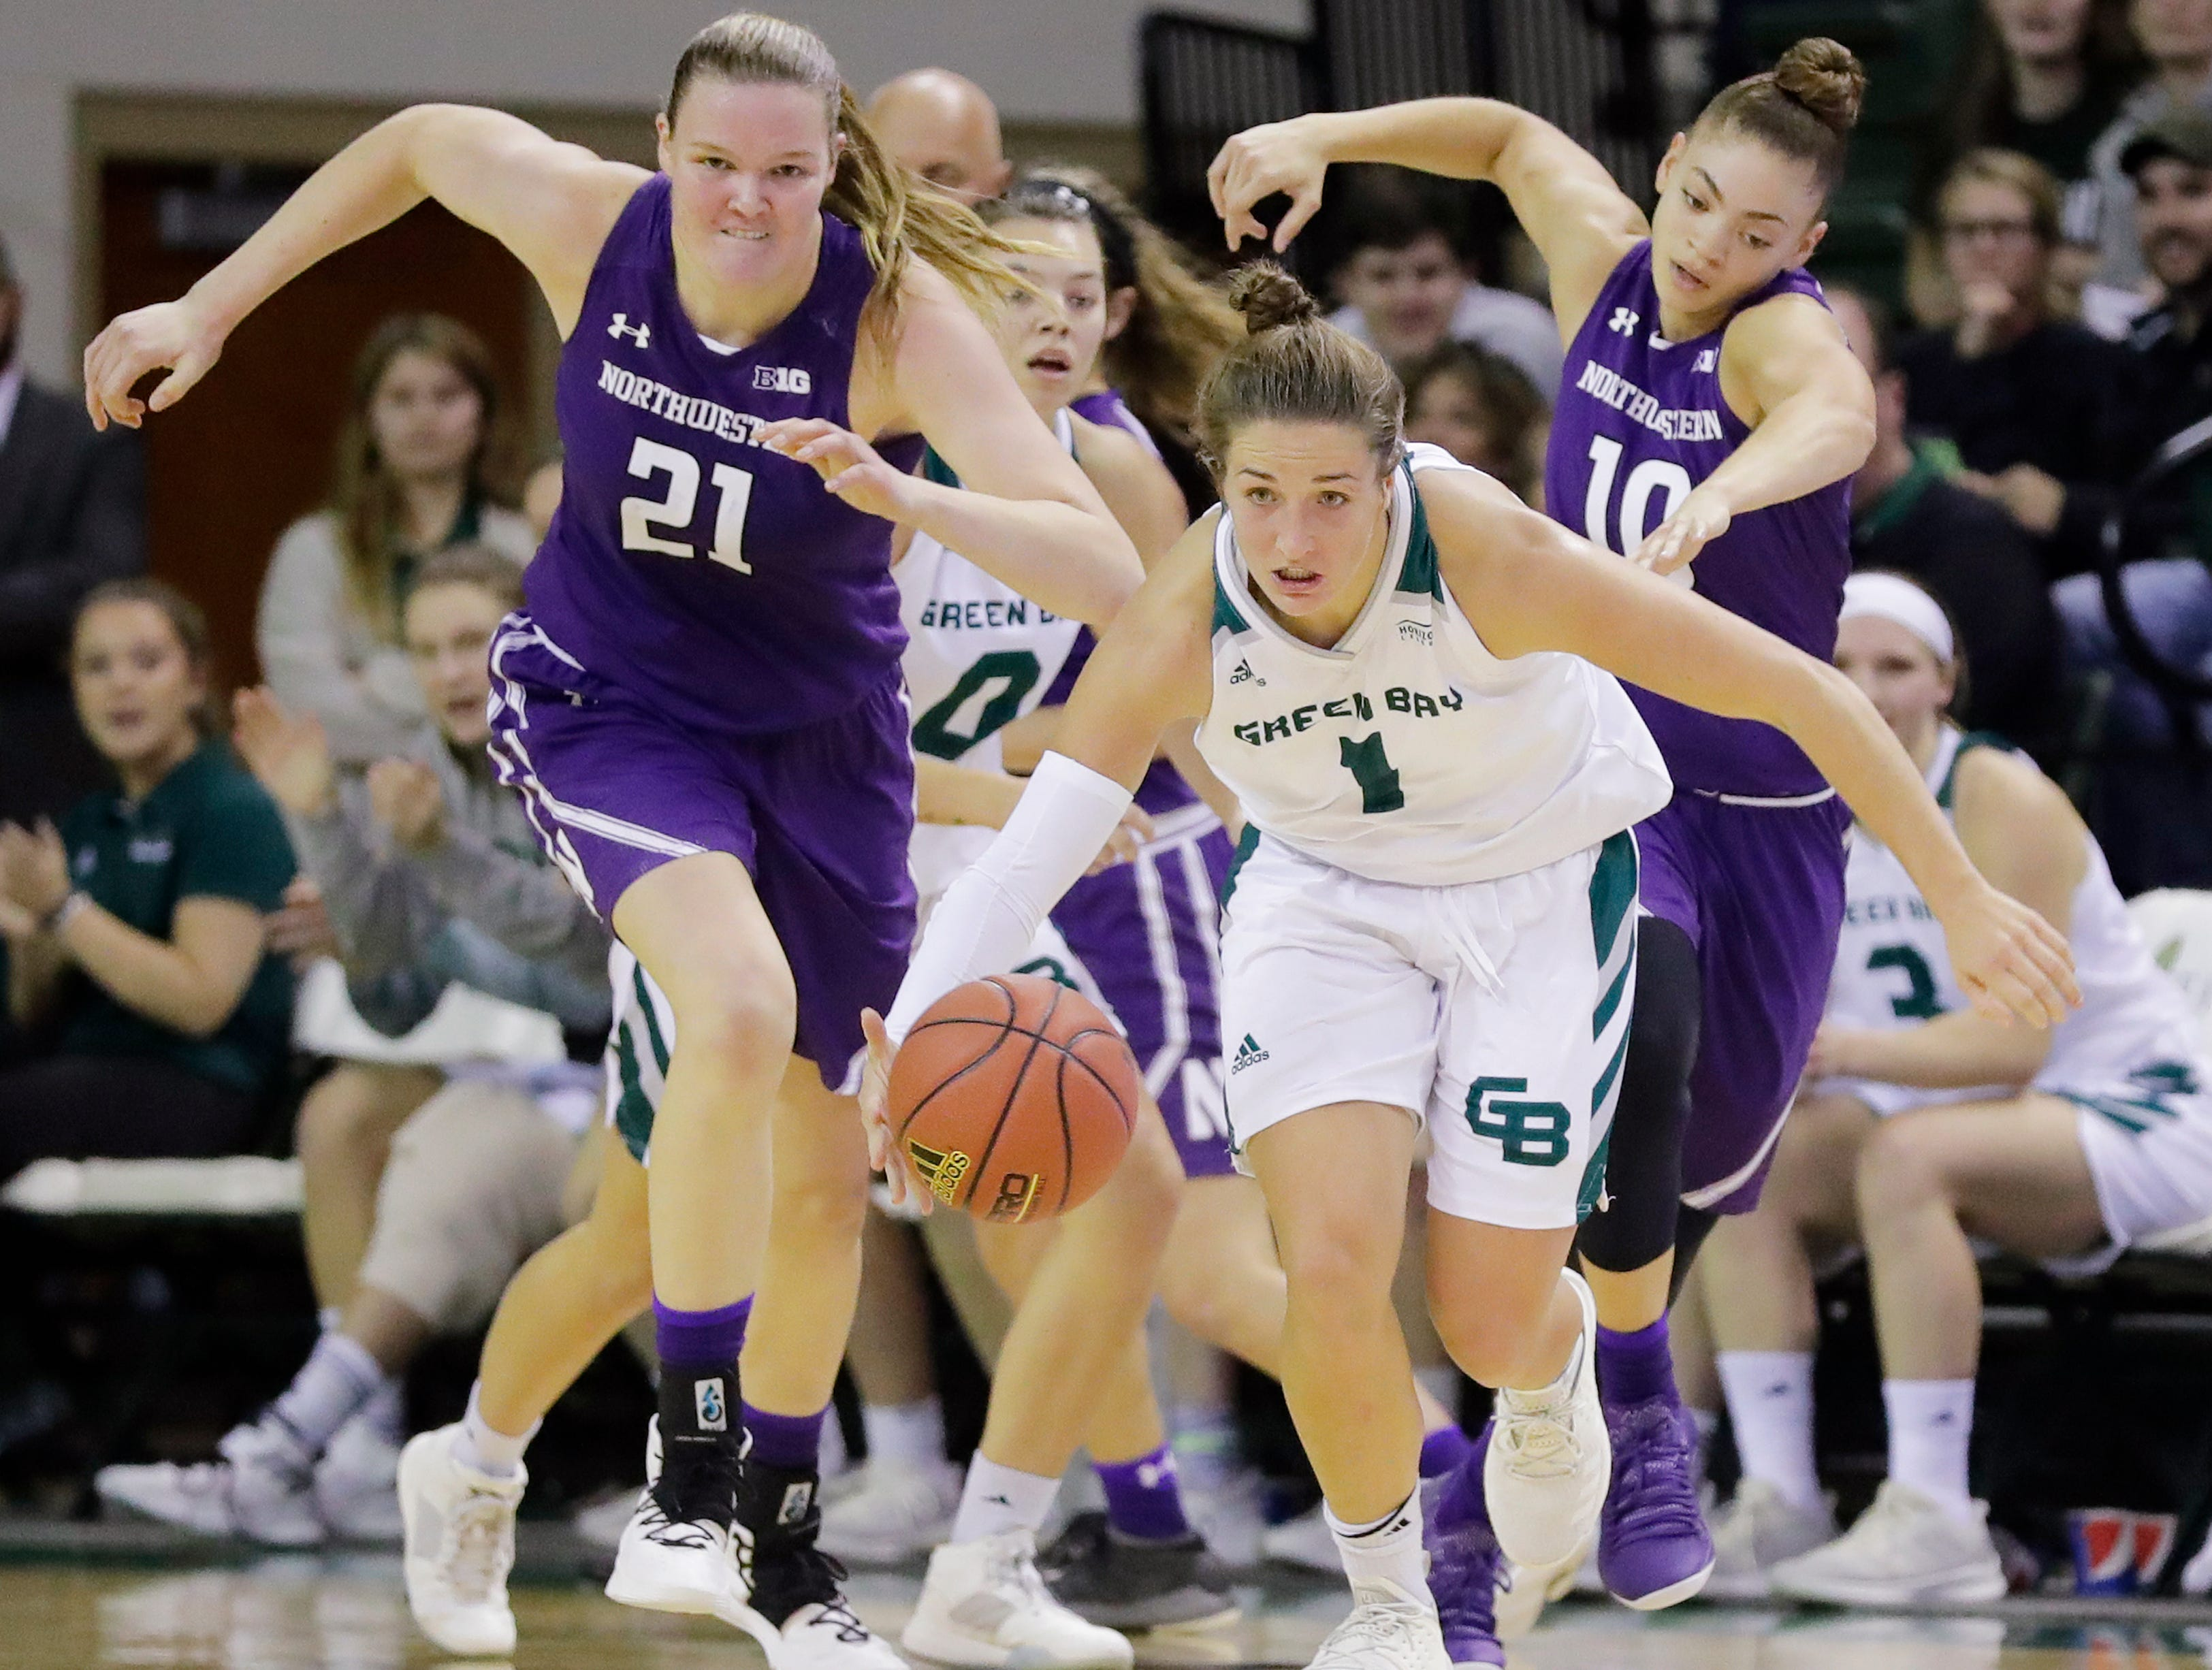 Green Bay Phoenix guard Jen Wellnitz (1) comes up with a steal against the Northwestern Wildcats in a women's NCAA basketball game at the Kress Center on Tuesday, November 6, 2018 in Green Bay, Wis.